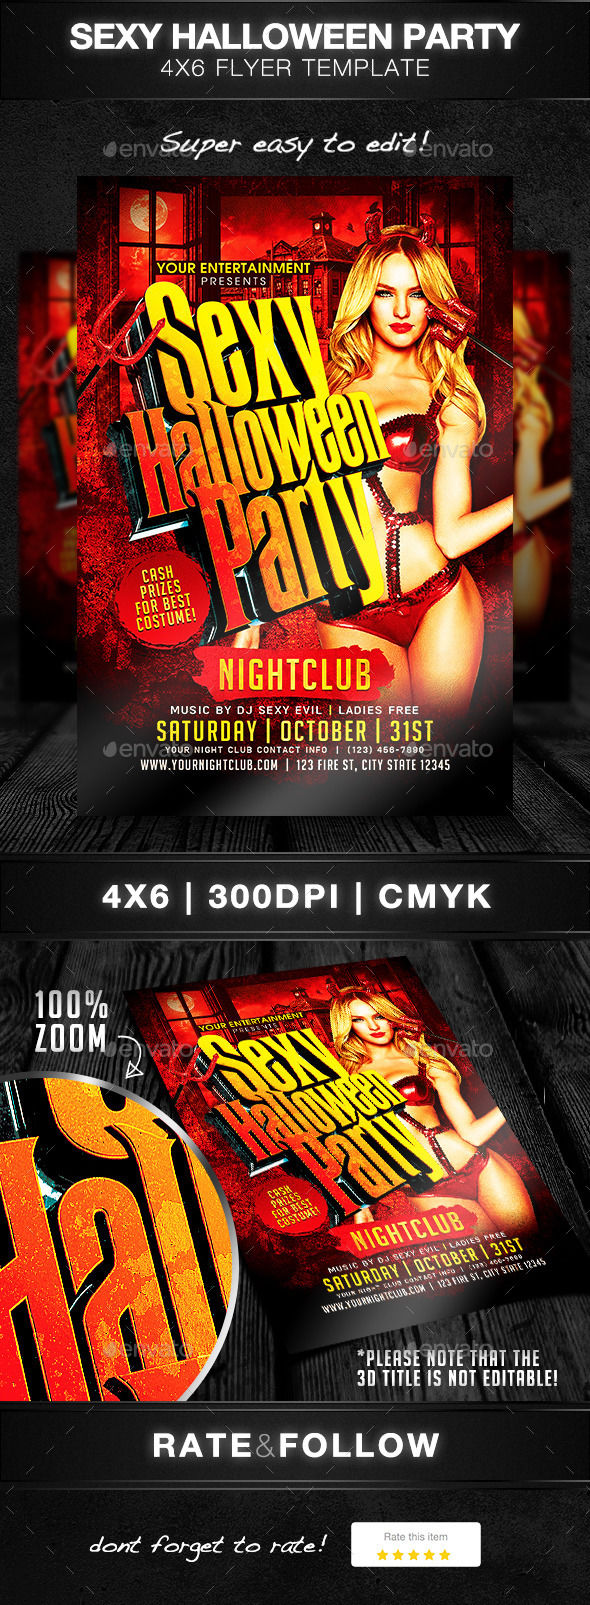 Sexy Halloween Party by DesignsByDior (Halloween party flyer)